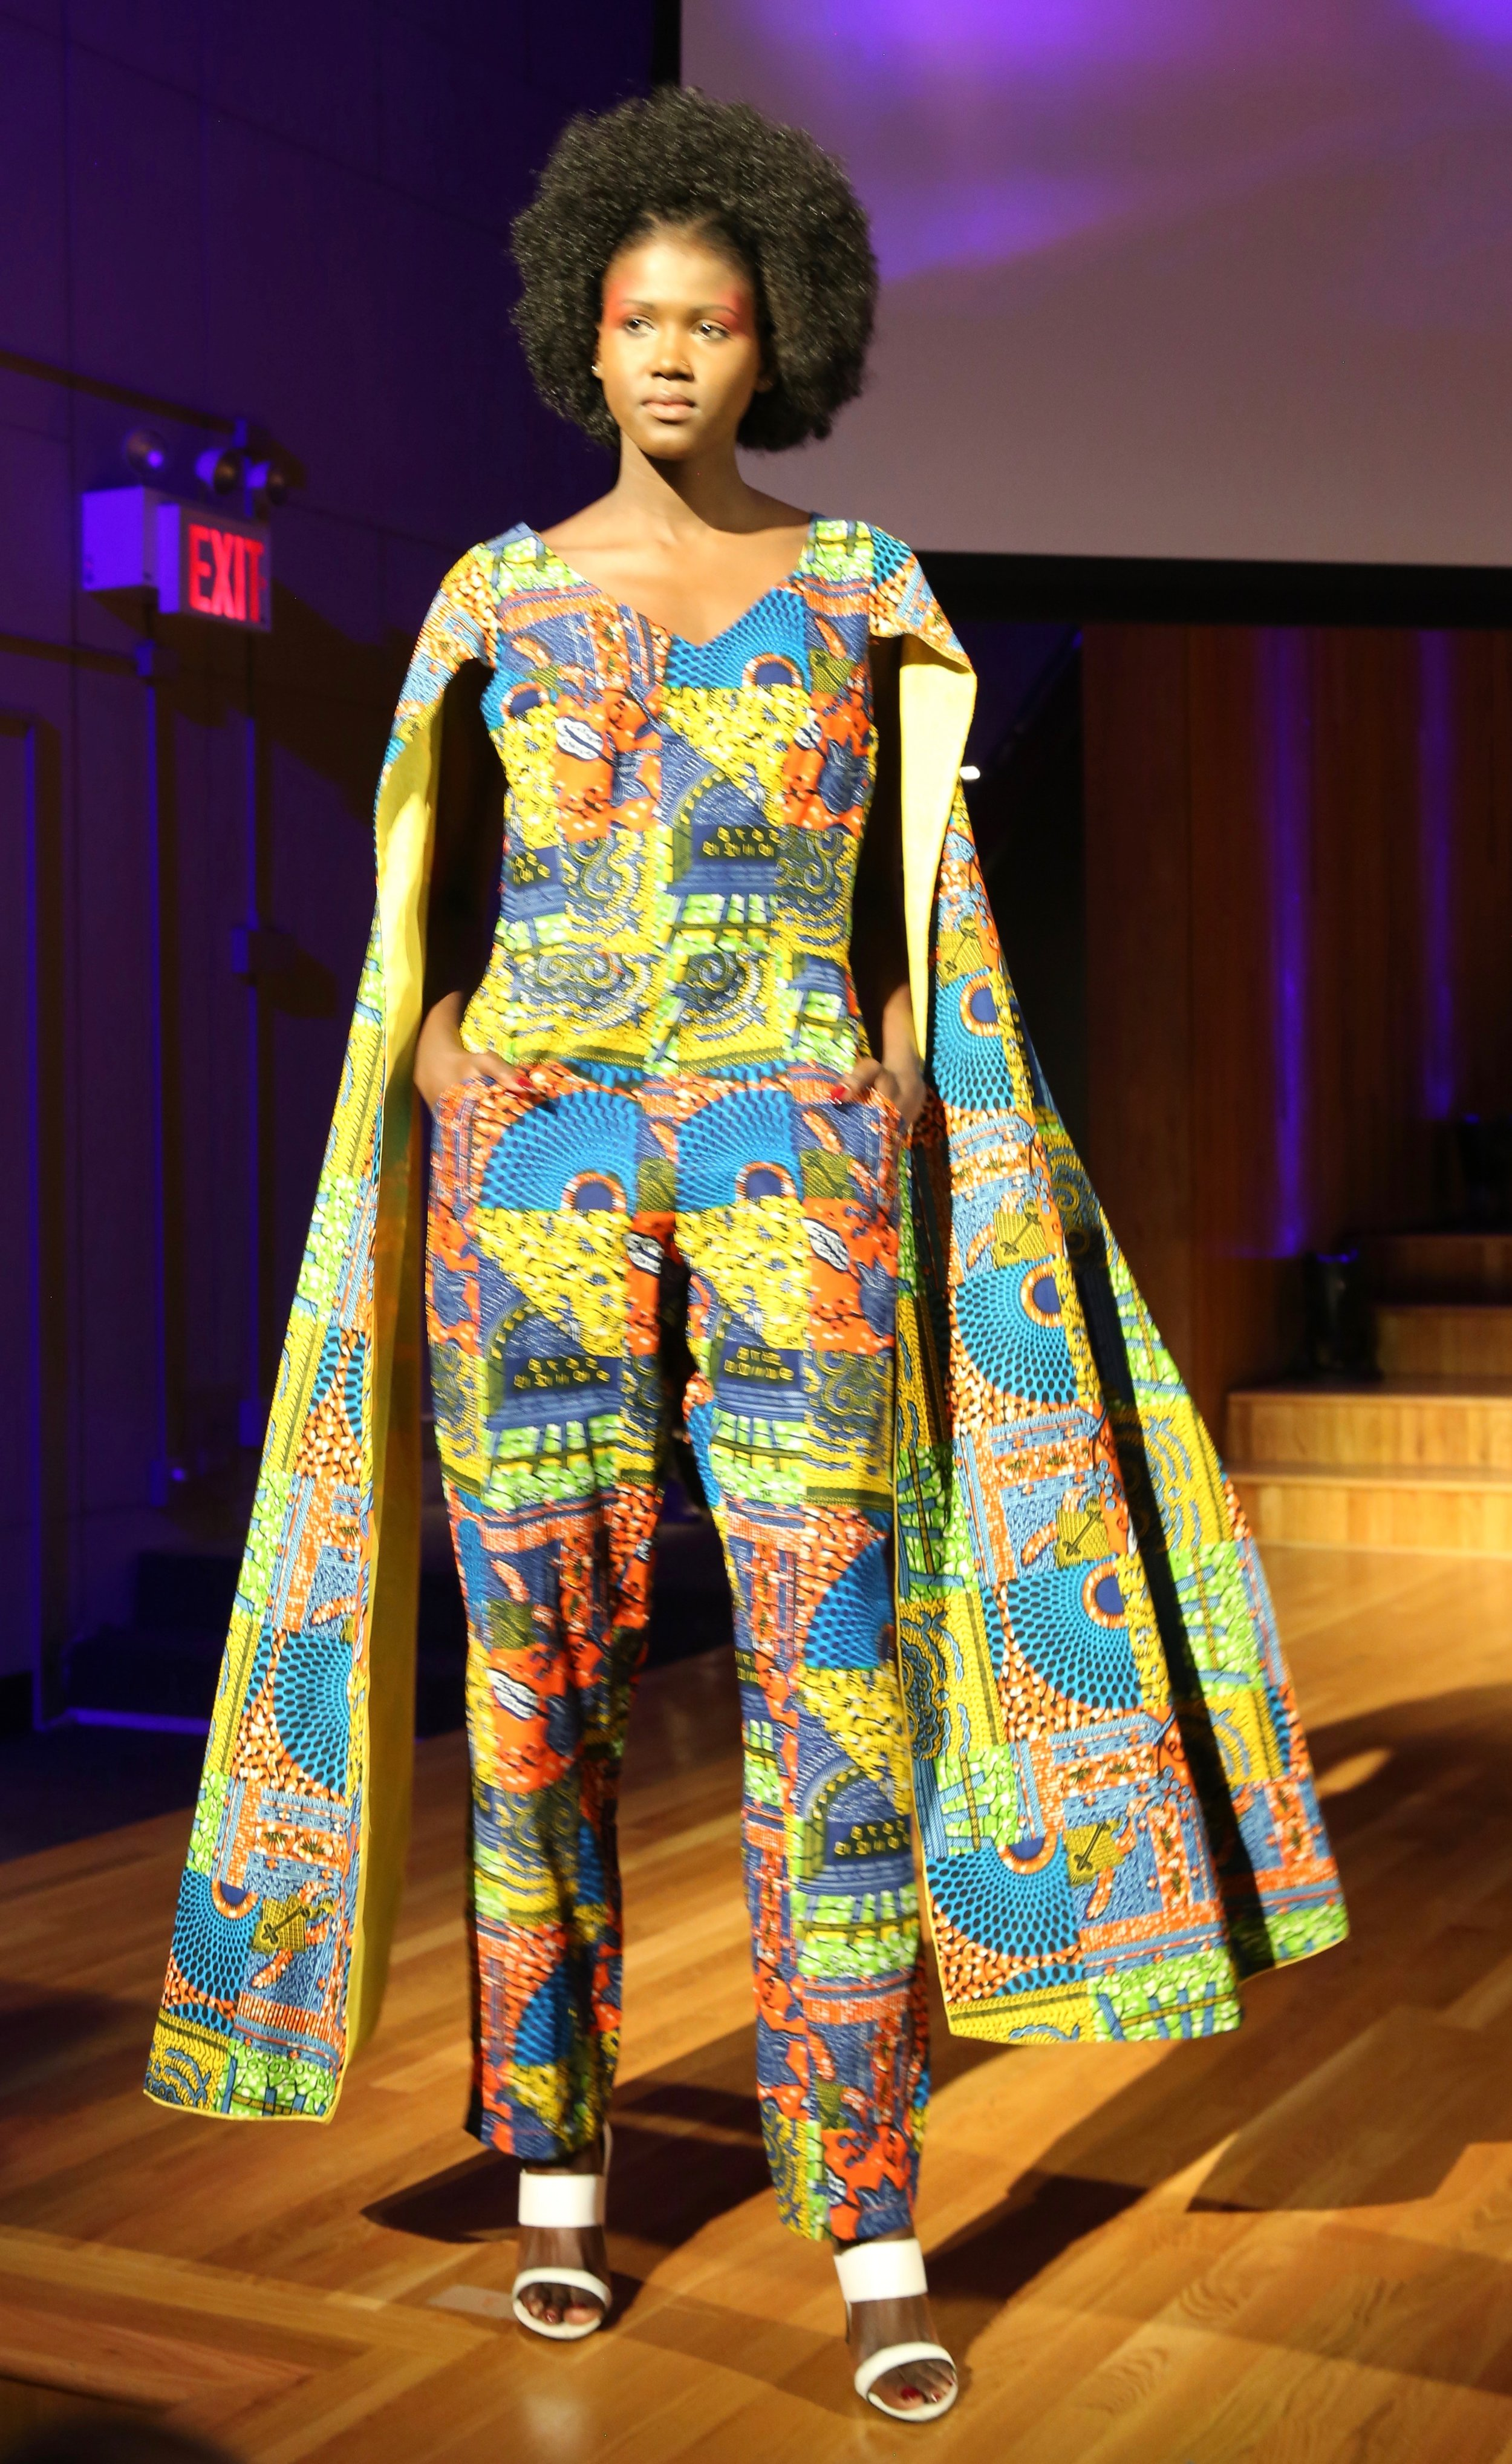 Outfit from Maryland-based Marie Francis Designs, (from TT)